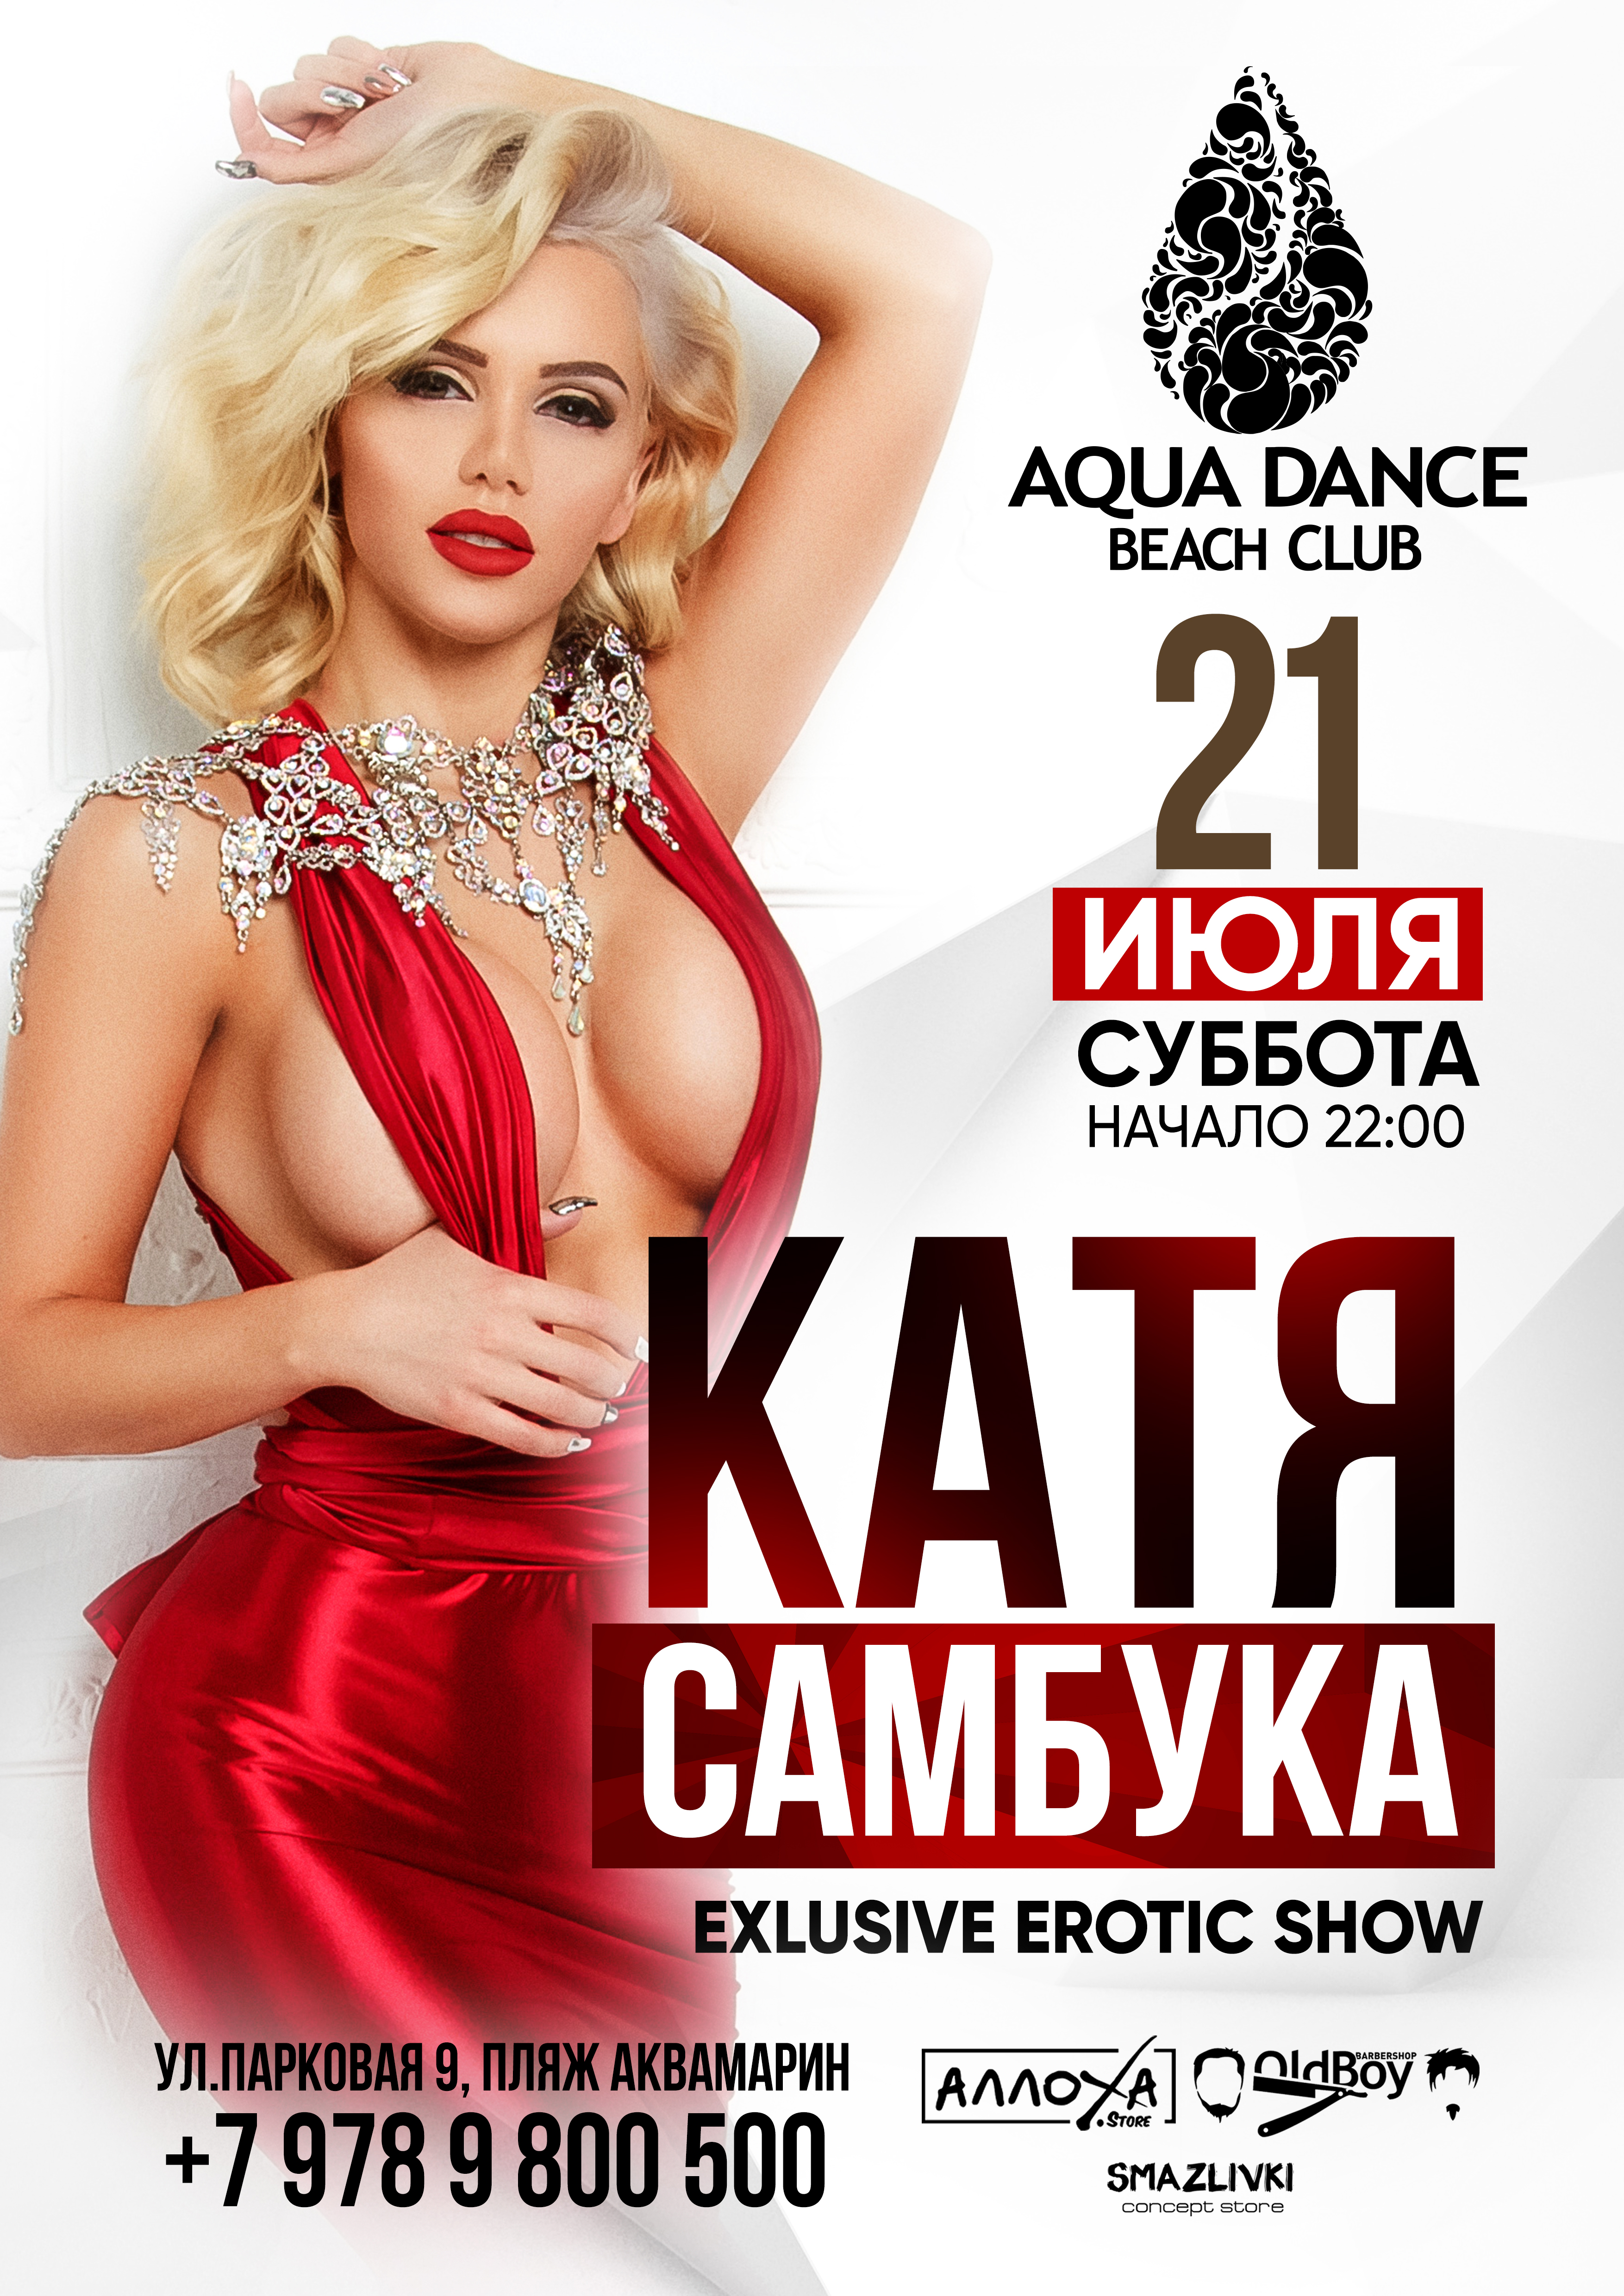 Катя Самбука в Aqua Dance Beach Club